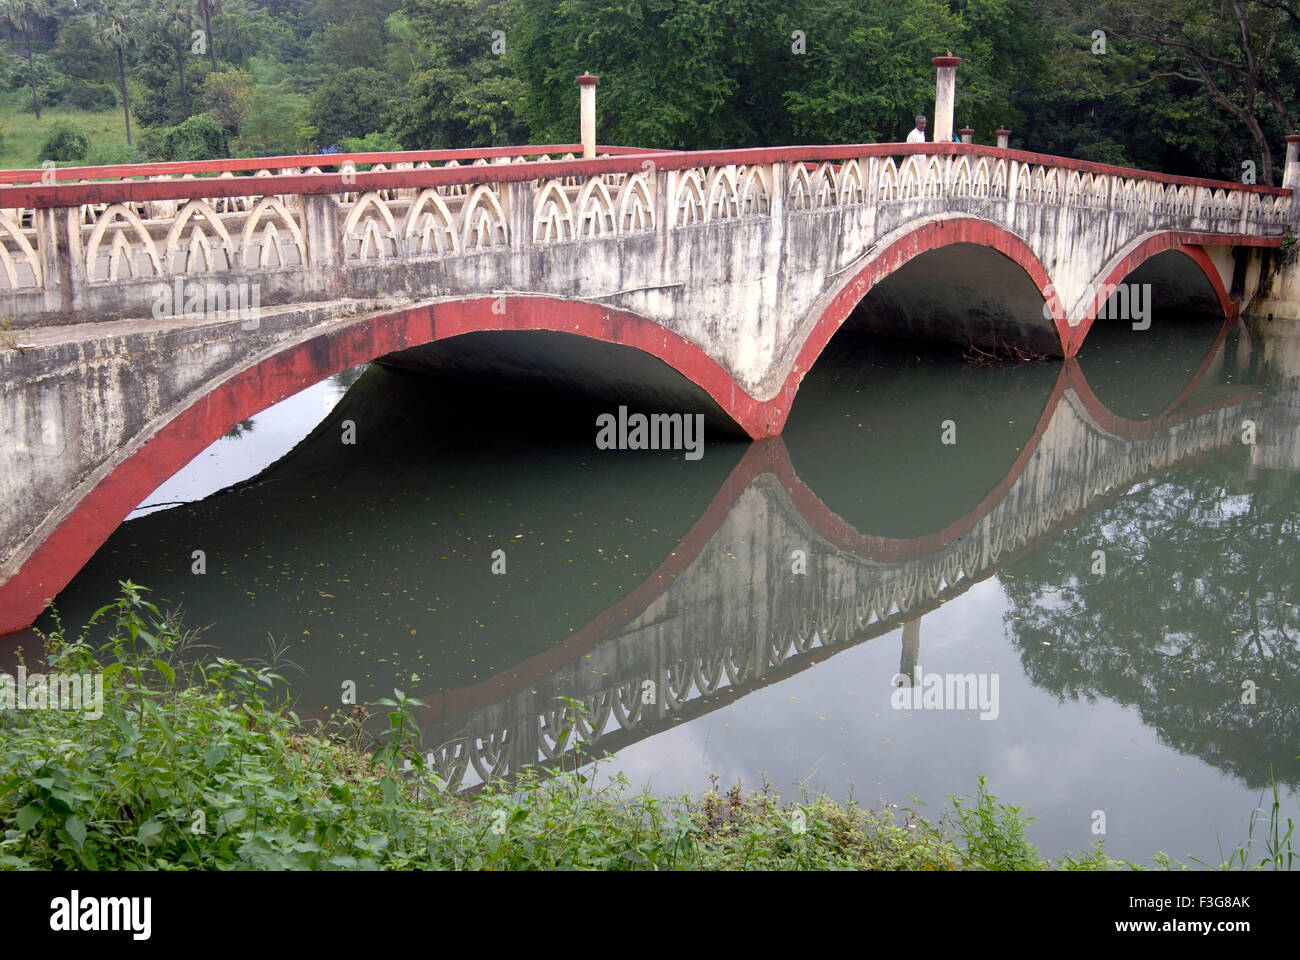 Arches of reinforced cement concrete bridge on Dahisar river with reflection ; Sanjay Gandhi National Park ; Borivali - Stock Image